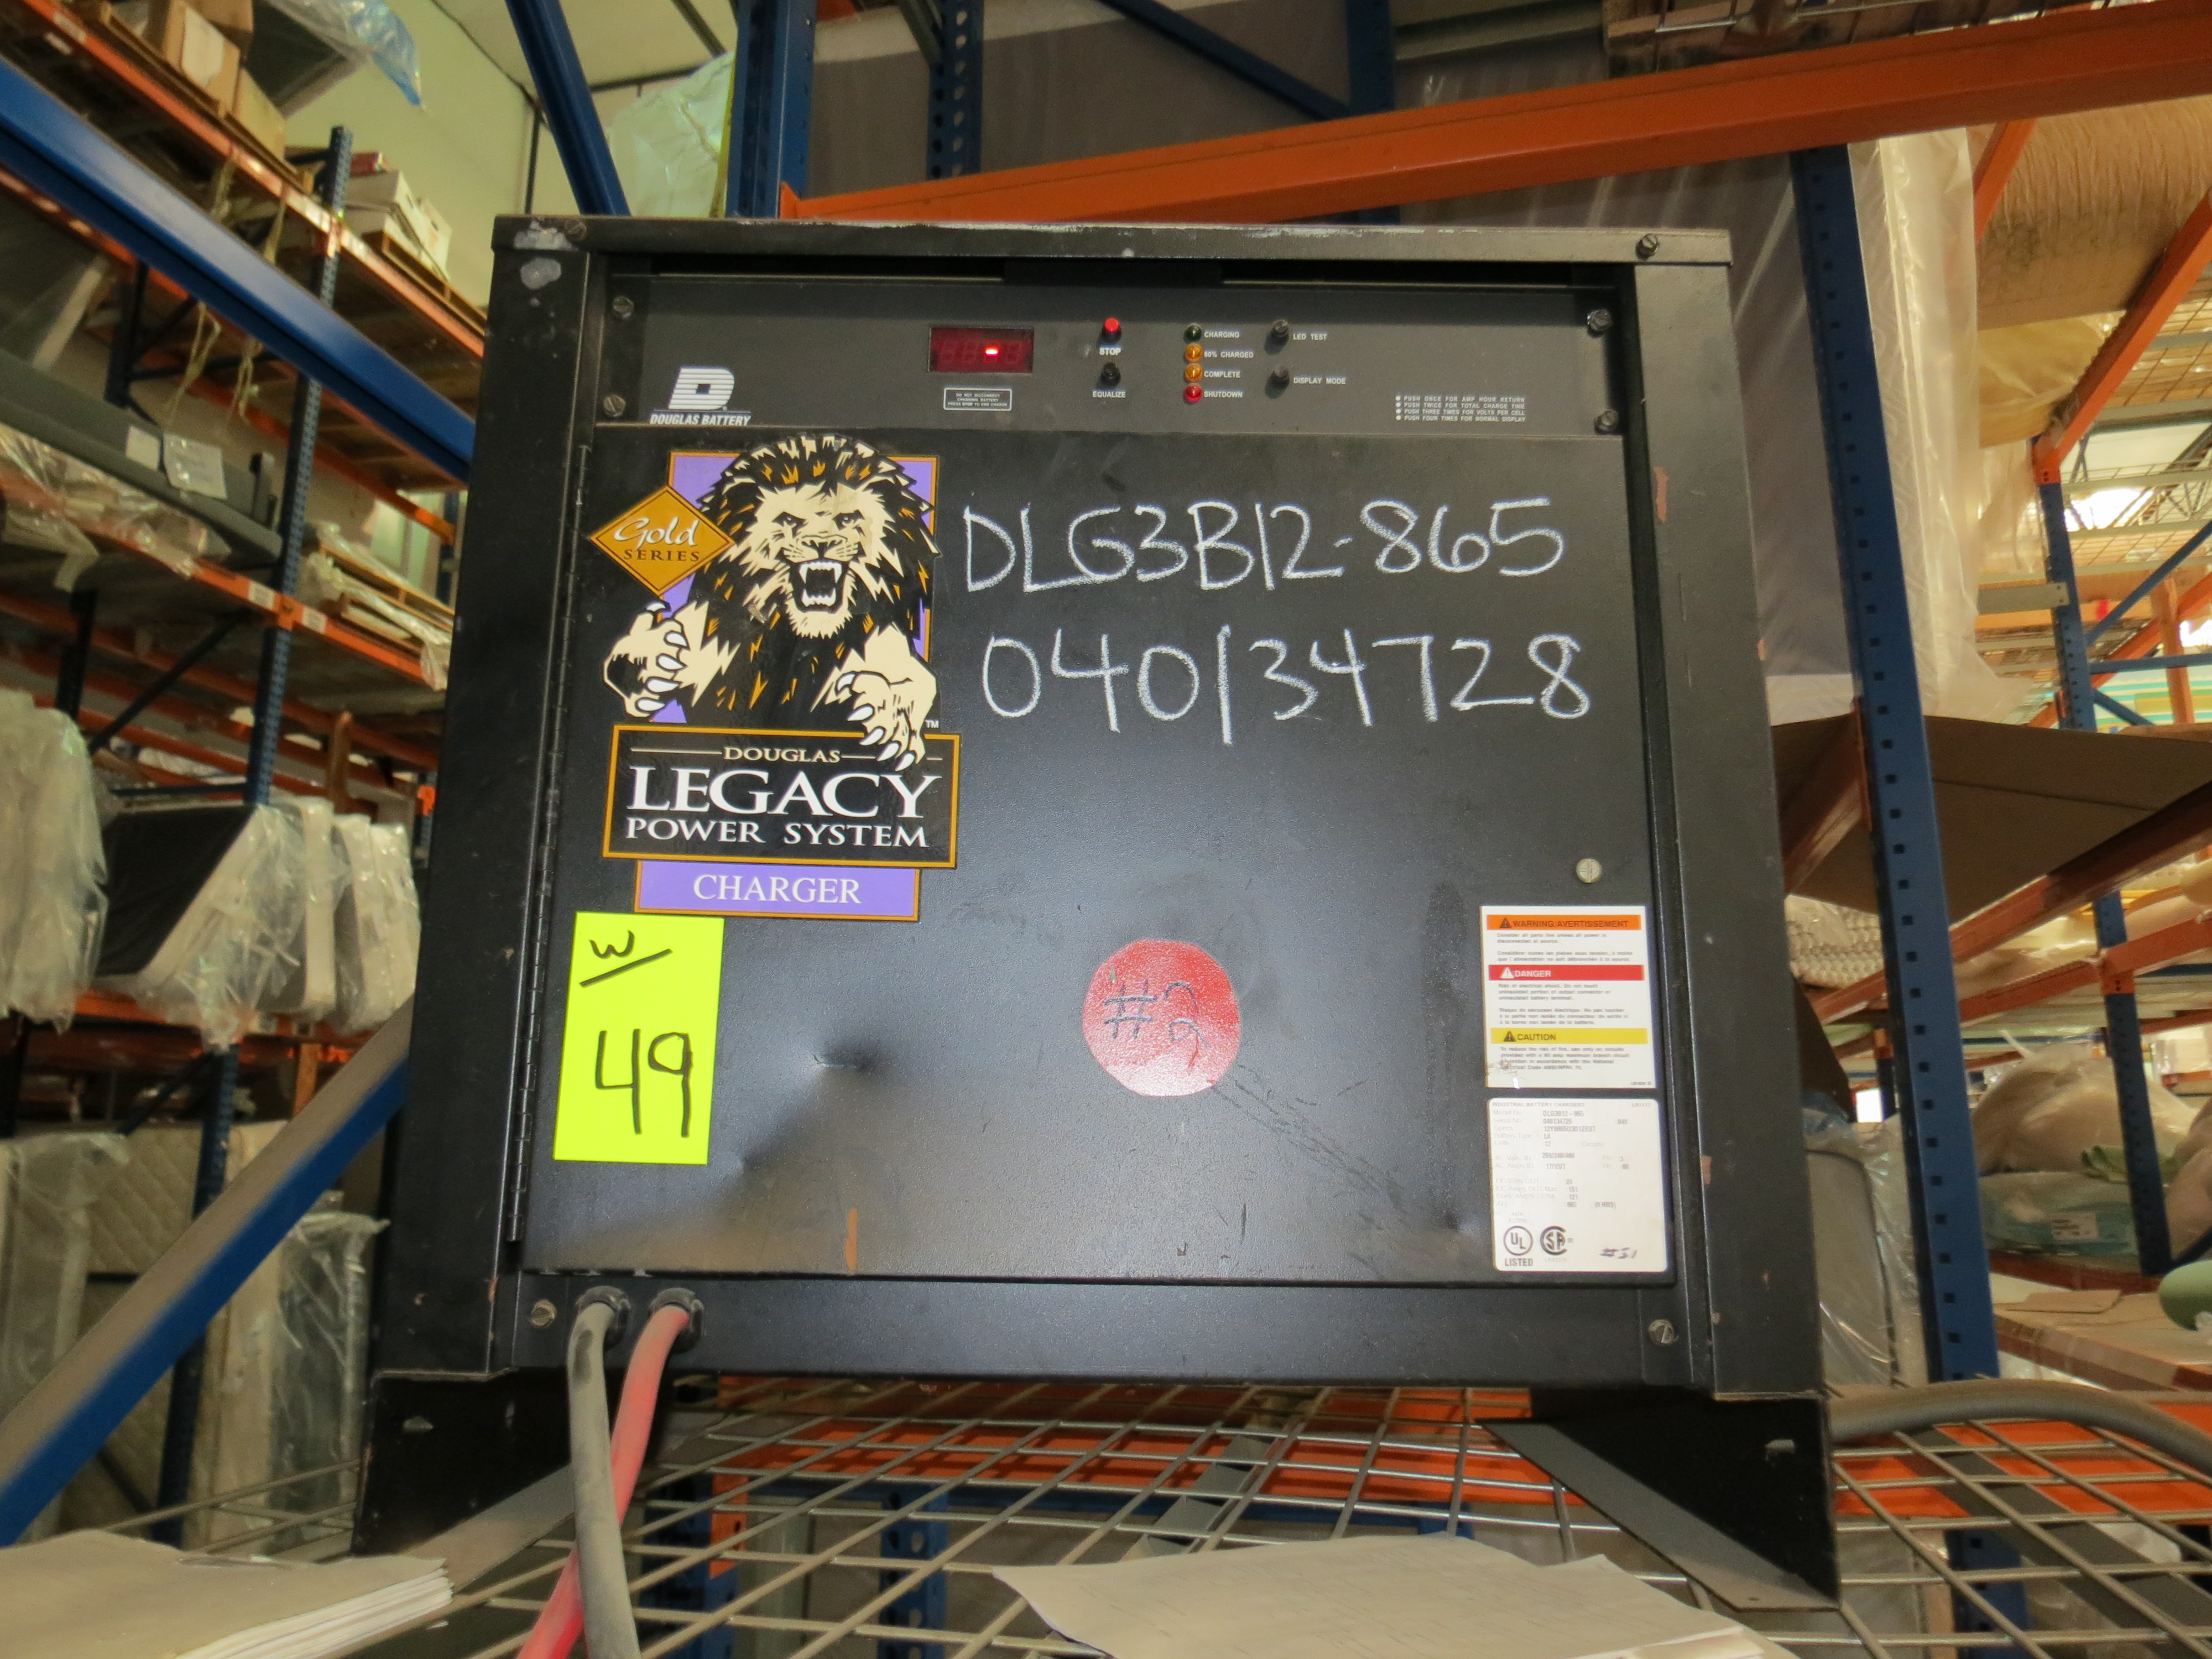 Crown SP 3-Stage Order Picker Electric Forklift 6860 Capacity ( Does Not Run, Needs New Battery) - Image 6 of 6